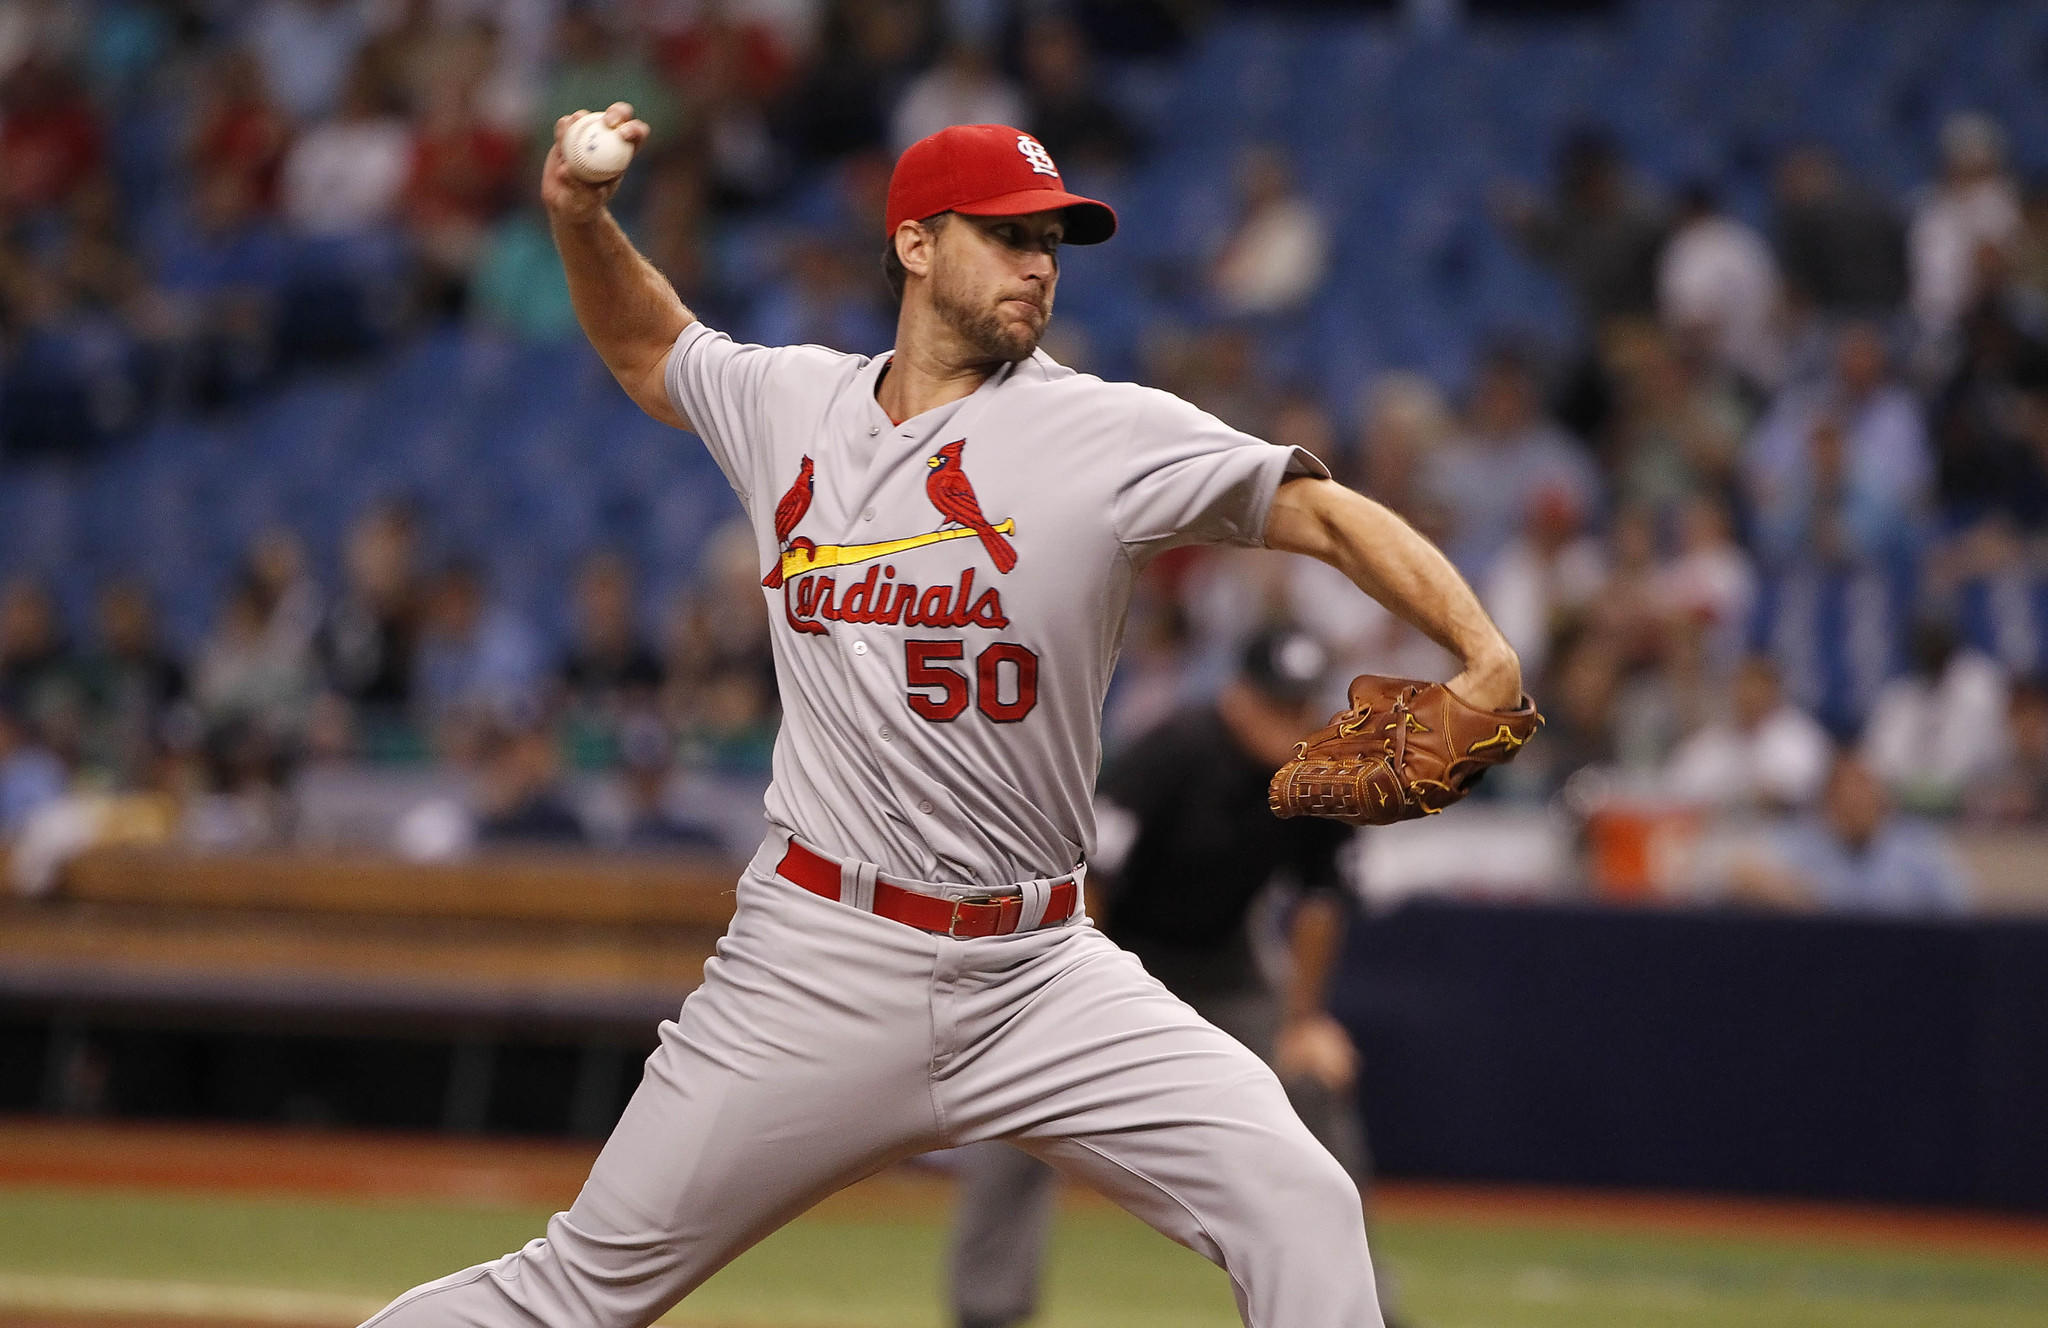 St. Louis Cardinals starting pitcher Adam Wainwright throws a pitch during the first inning against the Tampa Bay Rays at Tropicana Field.